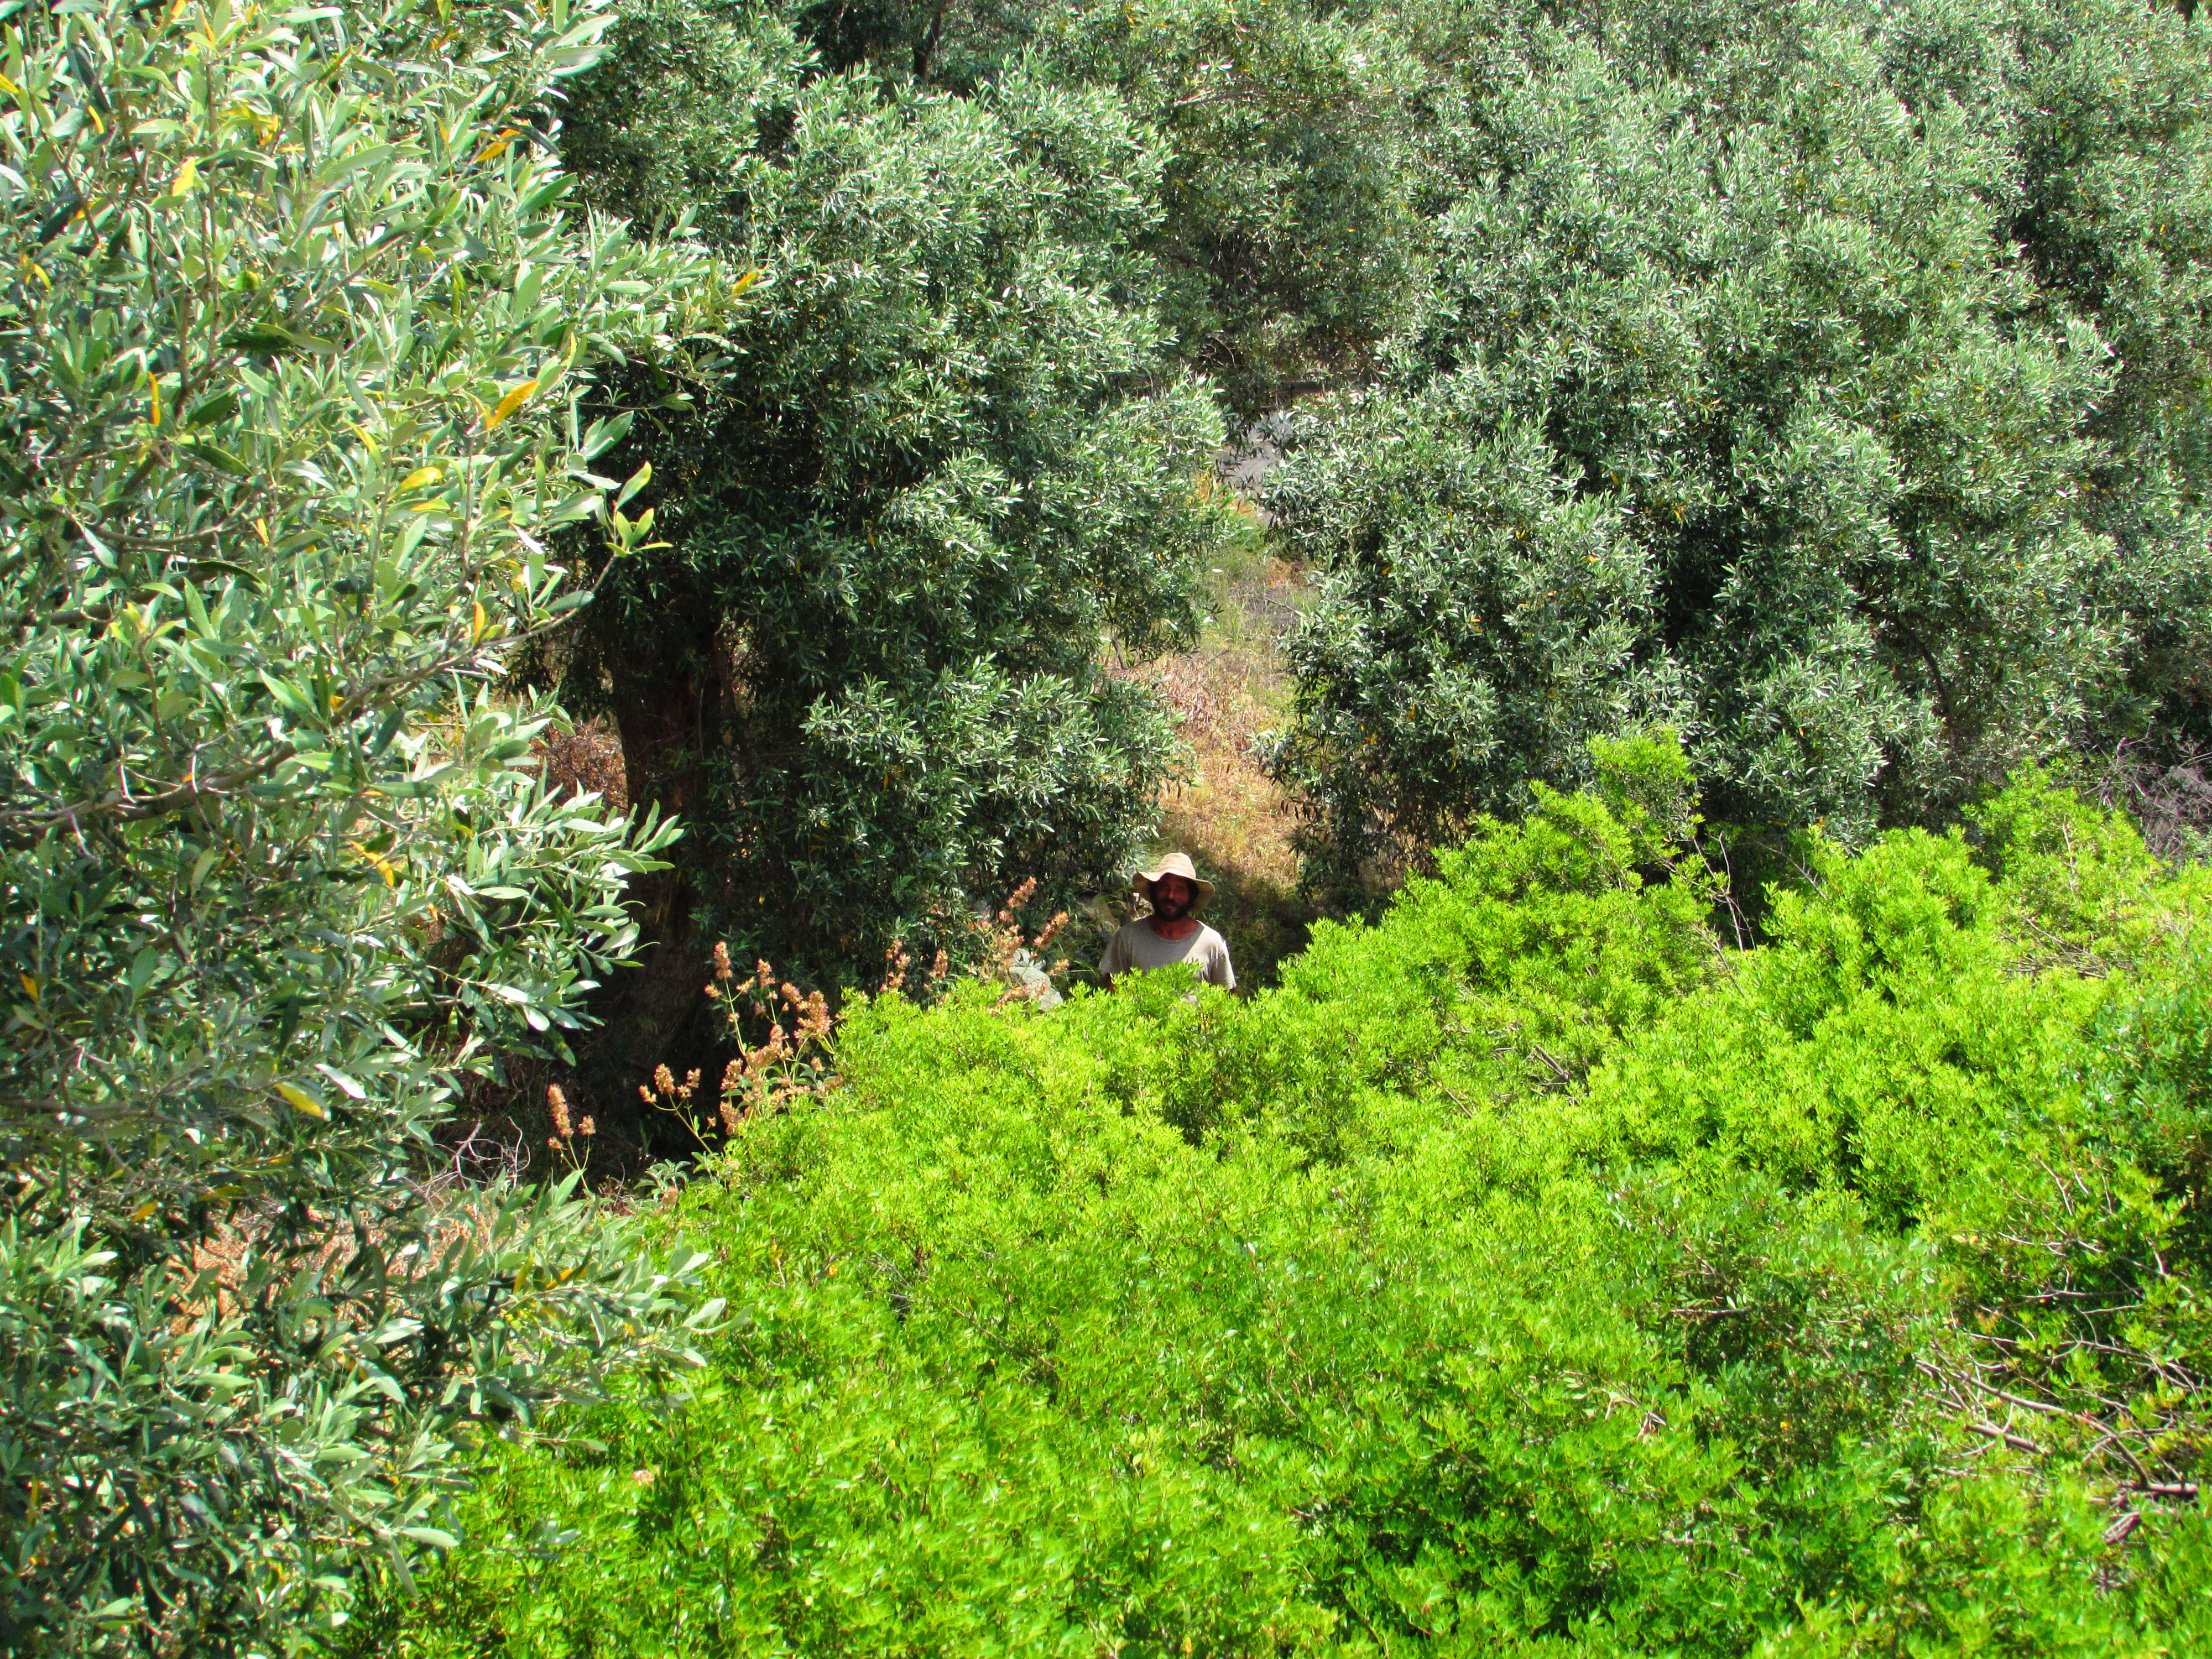 Asaf in an olive grove in Greece where we camped